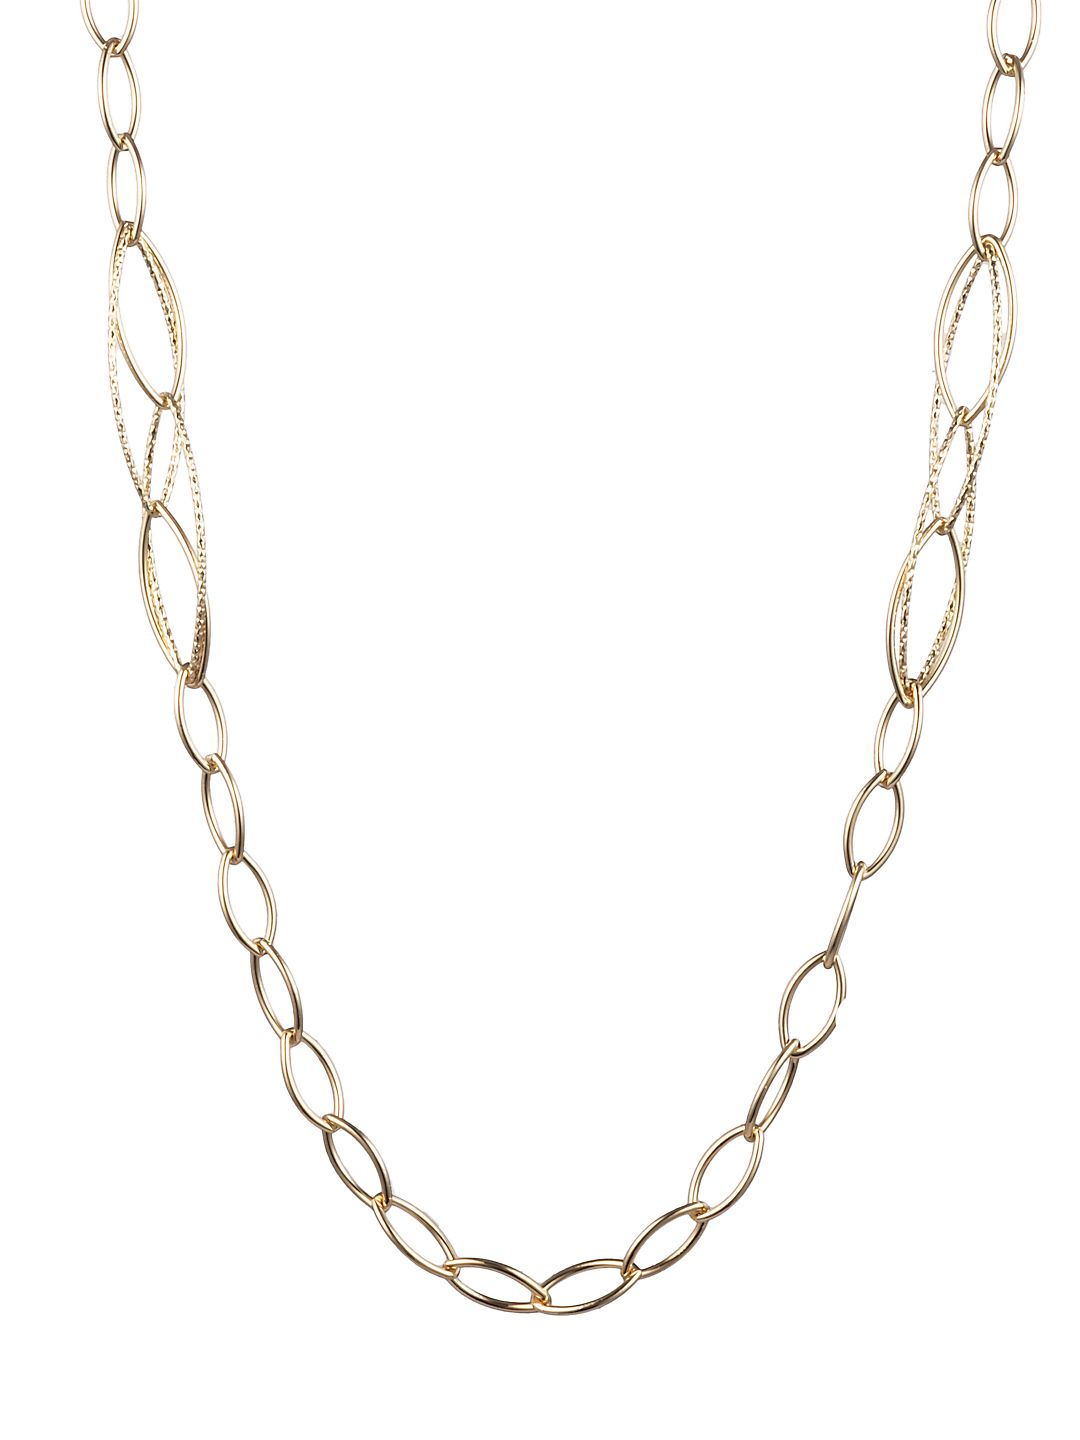 Goldtone Long Chain Necklace